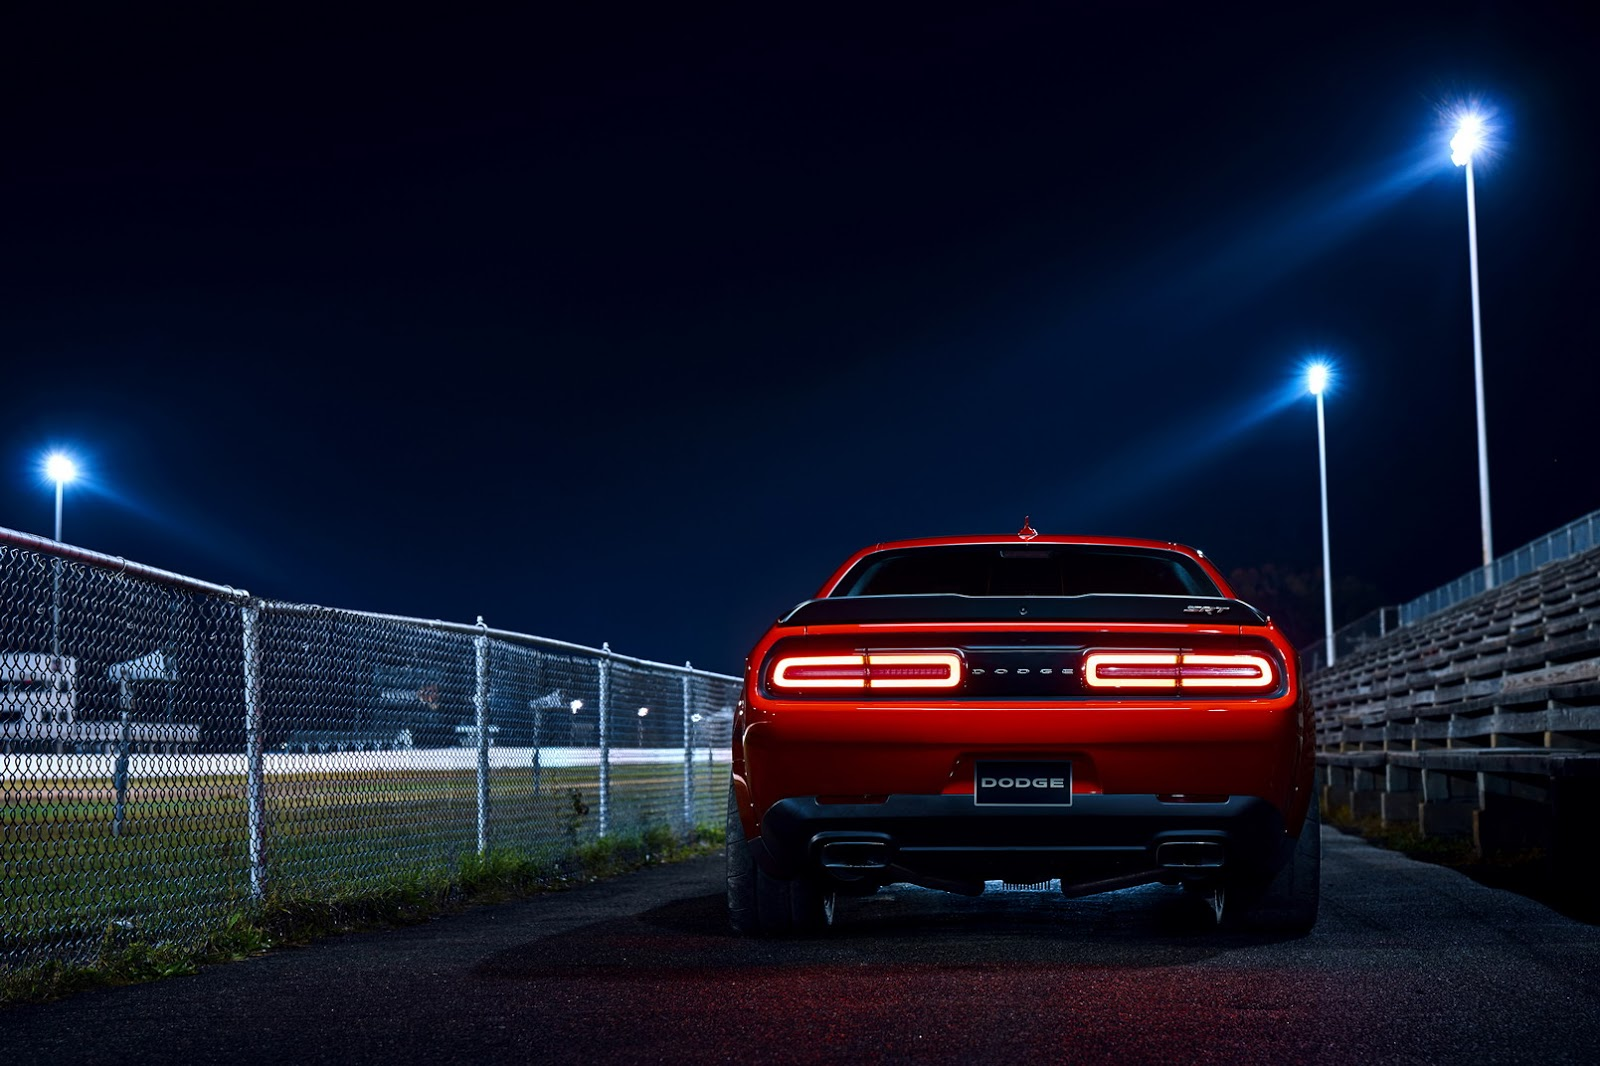 2018-Dodge-Challenger-Demon-41